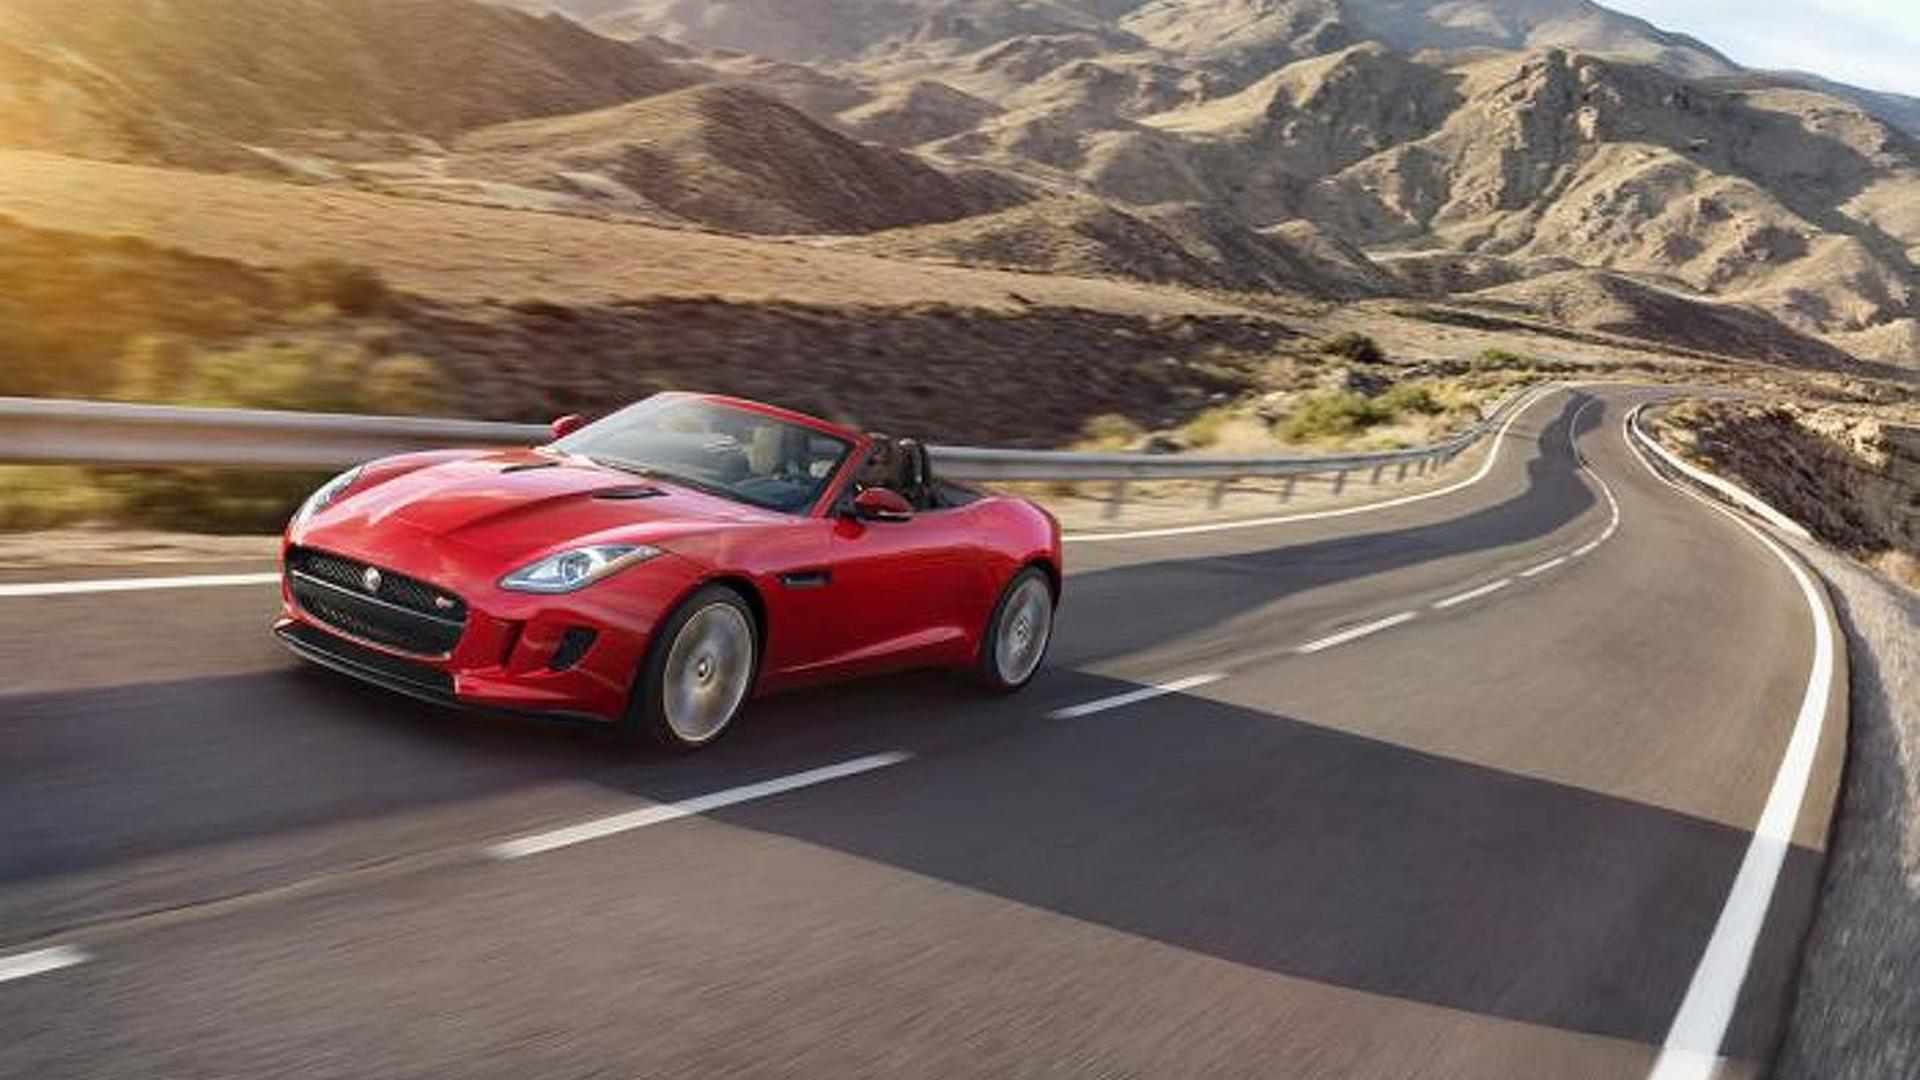 2016 Jaguar F-Type U.S. pricing announced [video]